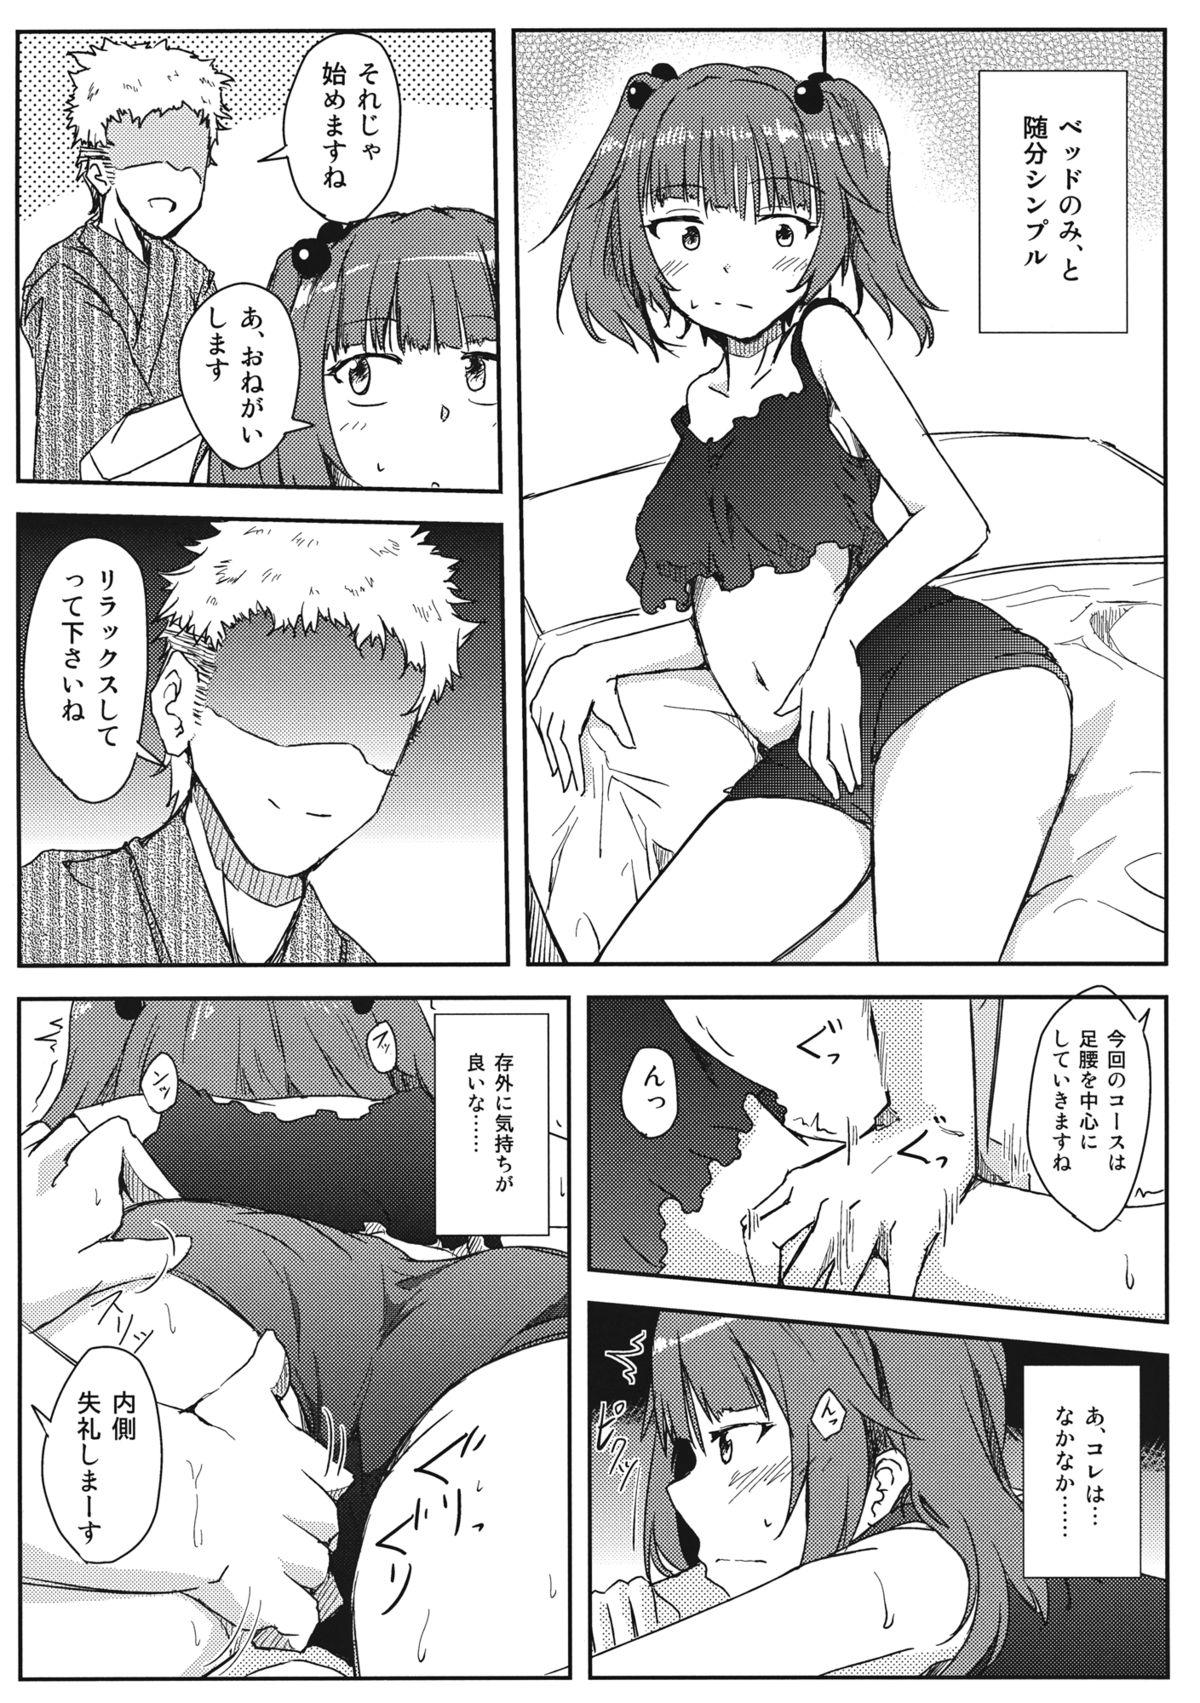 Touhou Muchi Shichu Goudou - Toho joint magazine sex in the ignorant situations 10